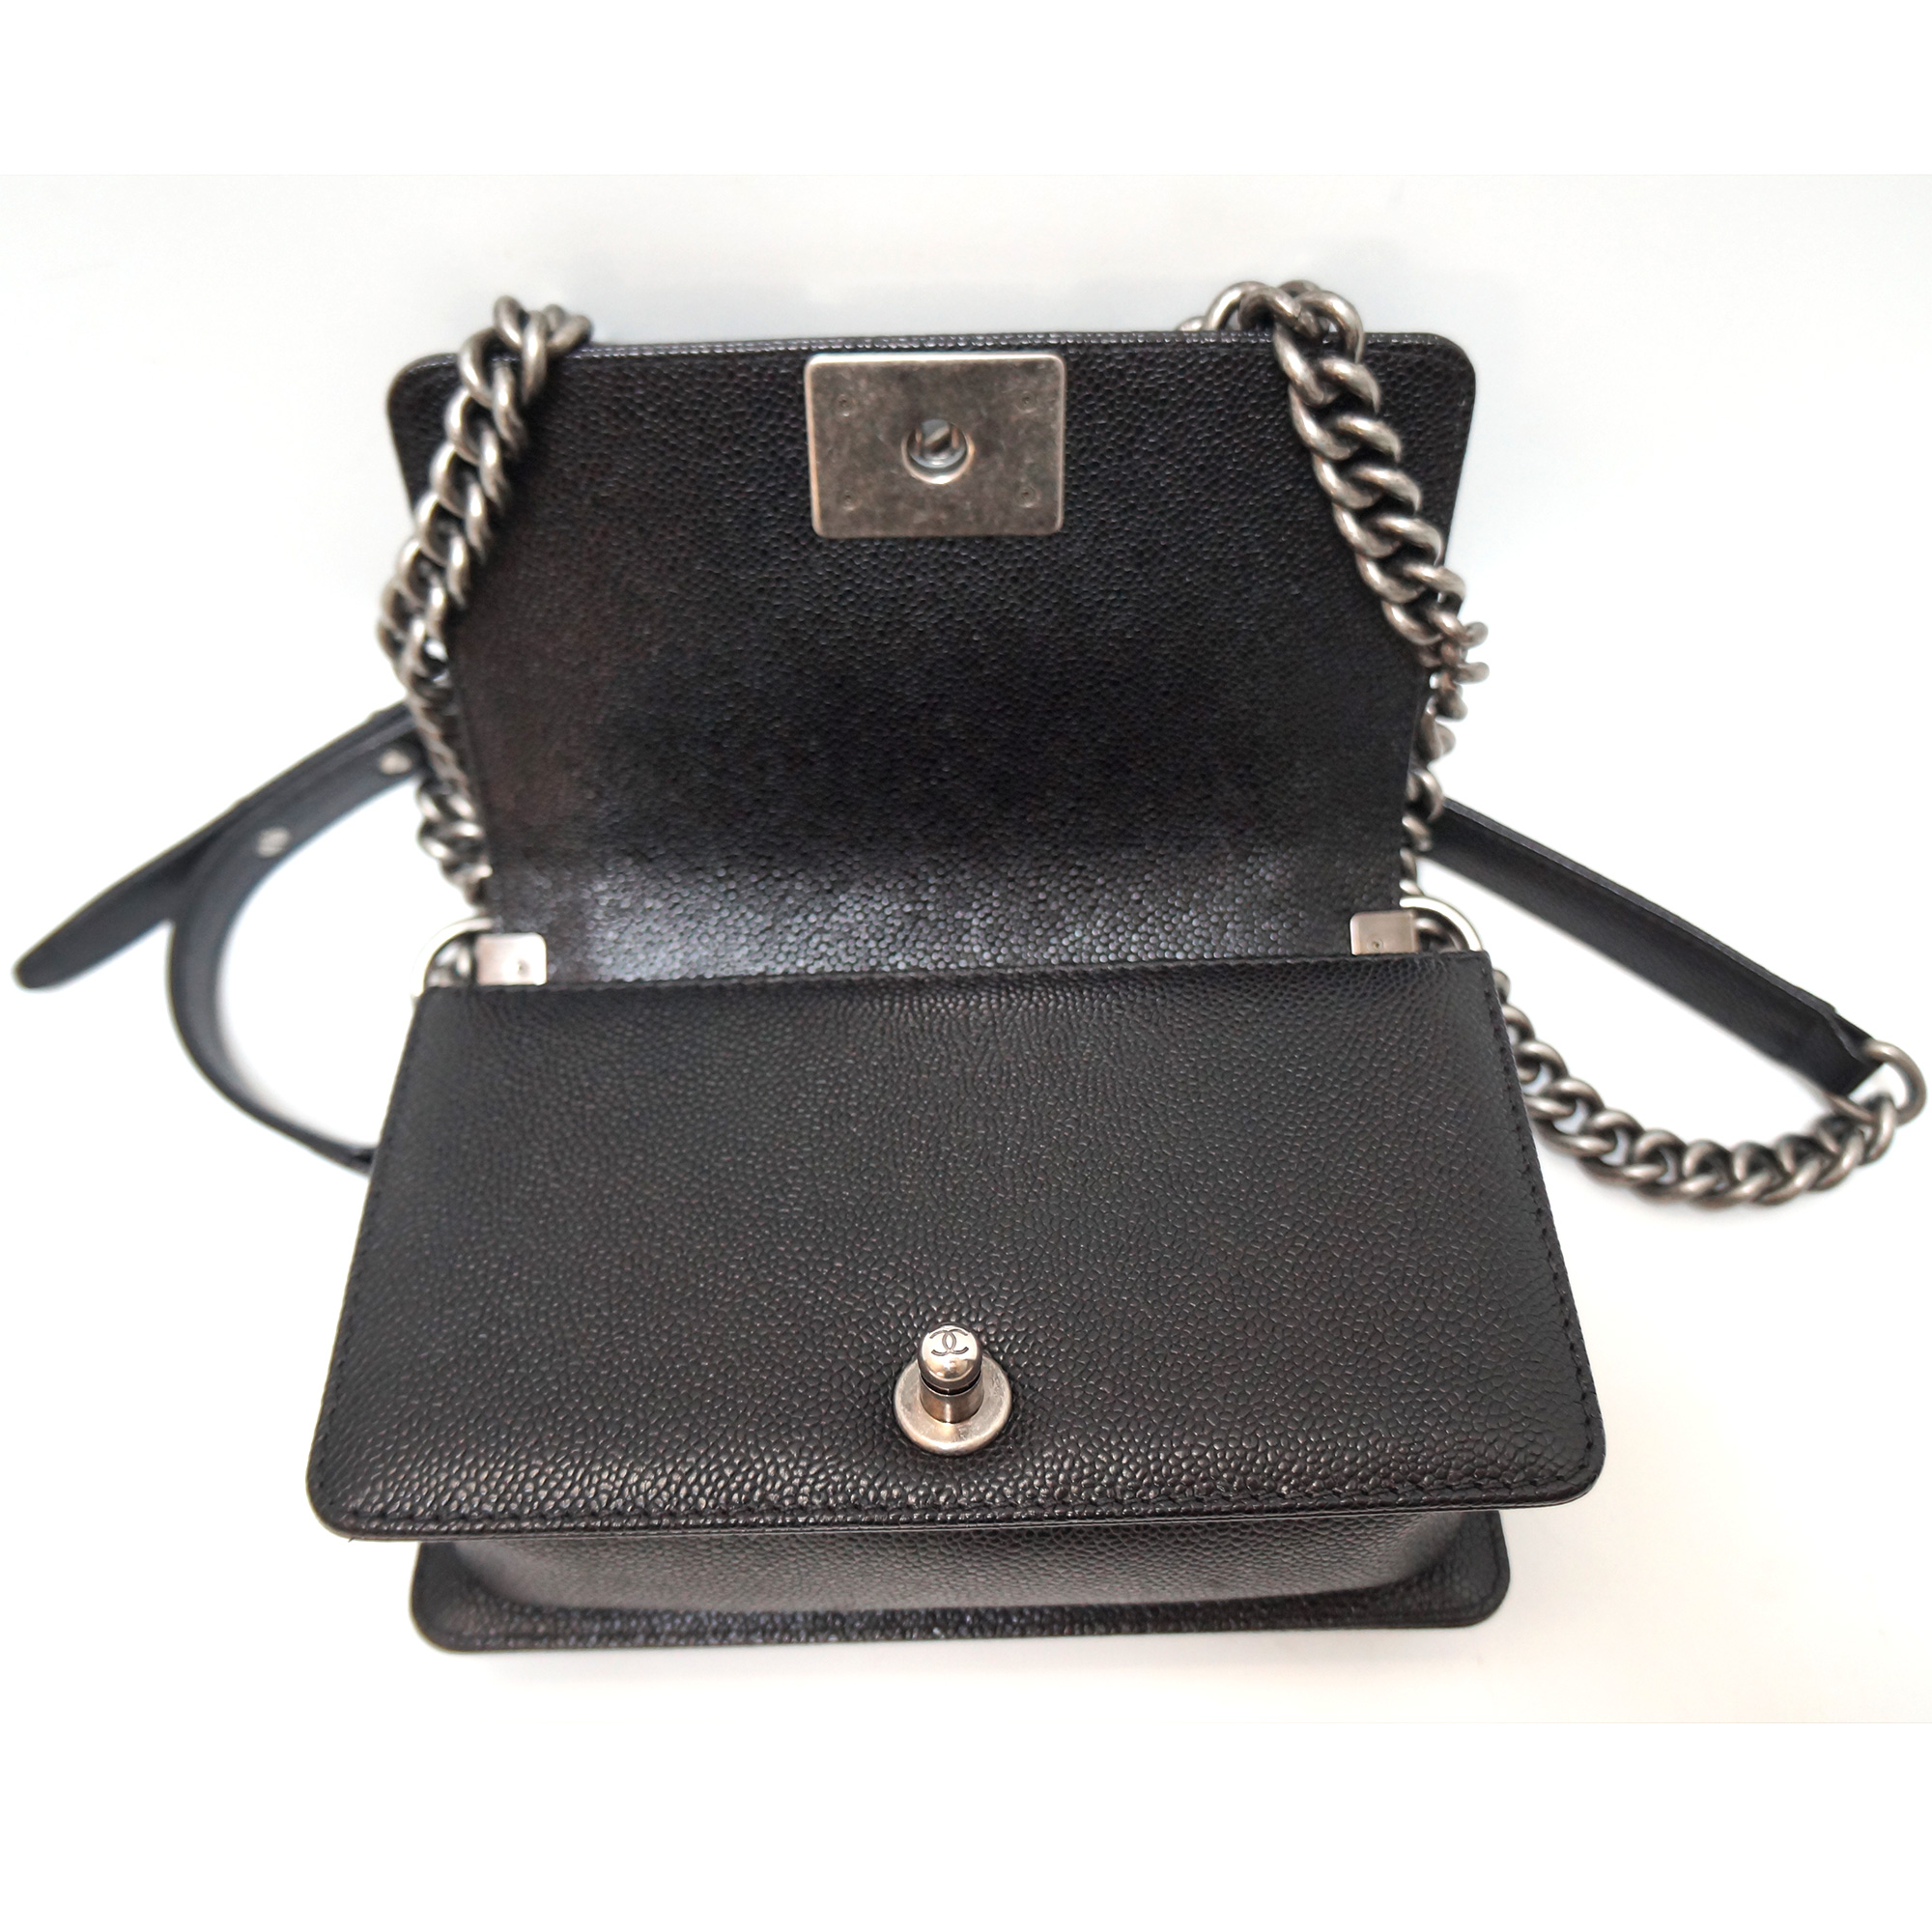 39d990feecf1 Chanel Small Flap Bag Caviar Leather | Stanford Center for ...